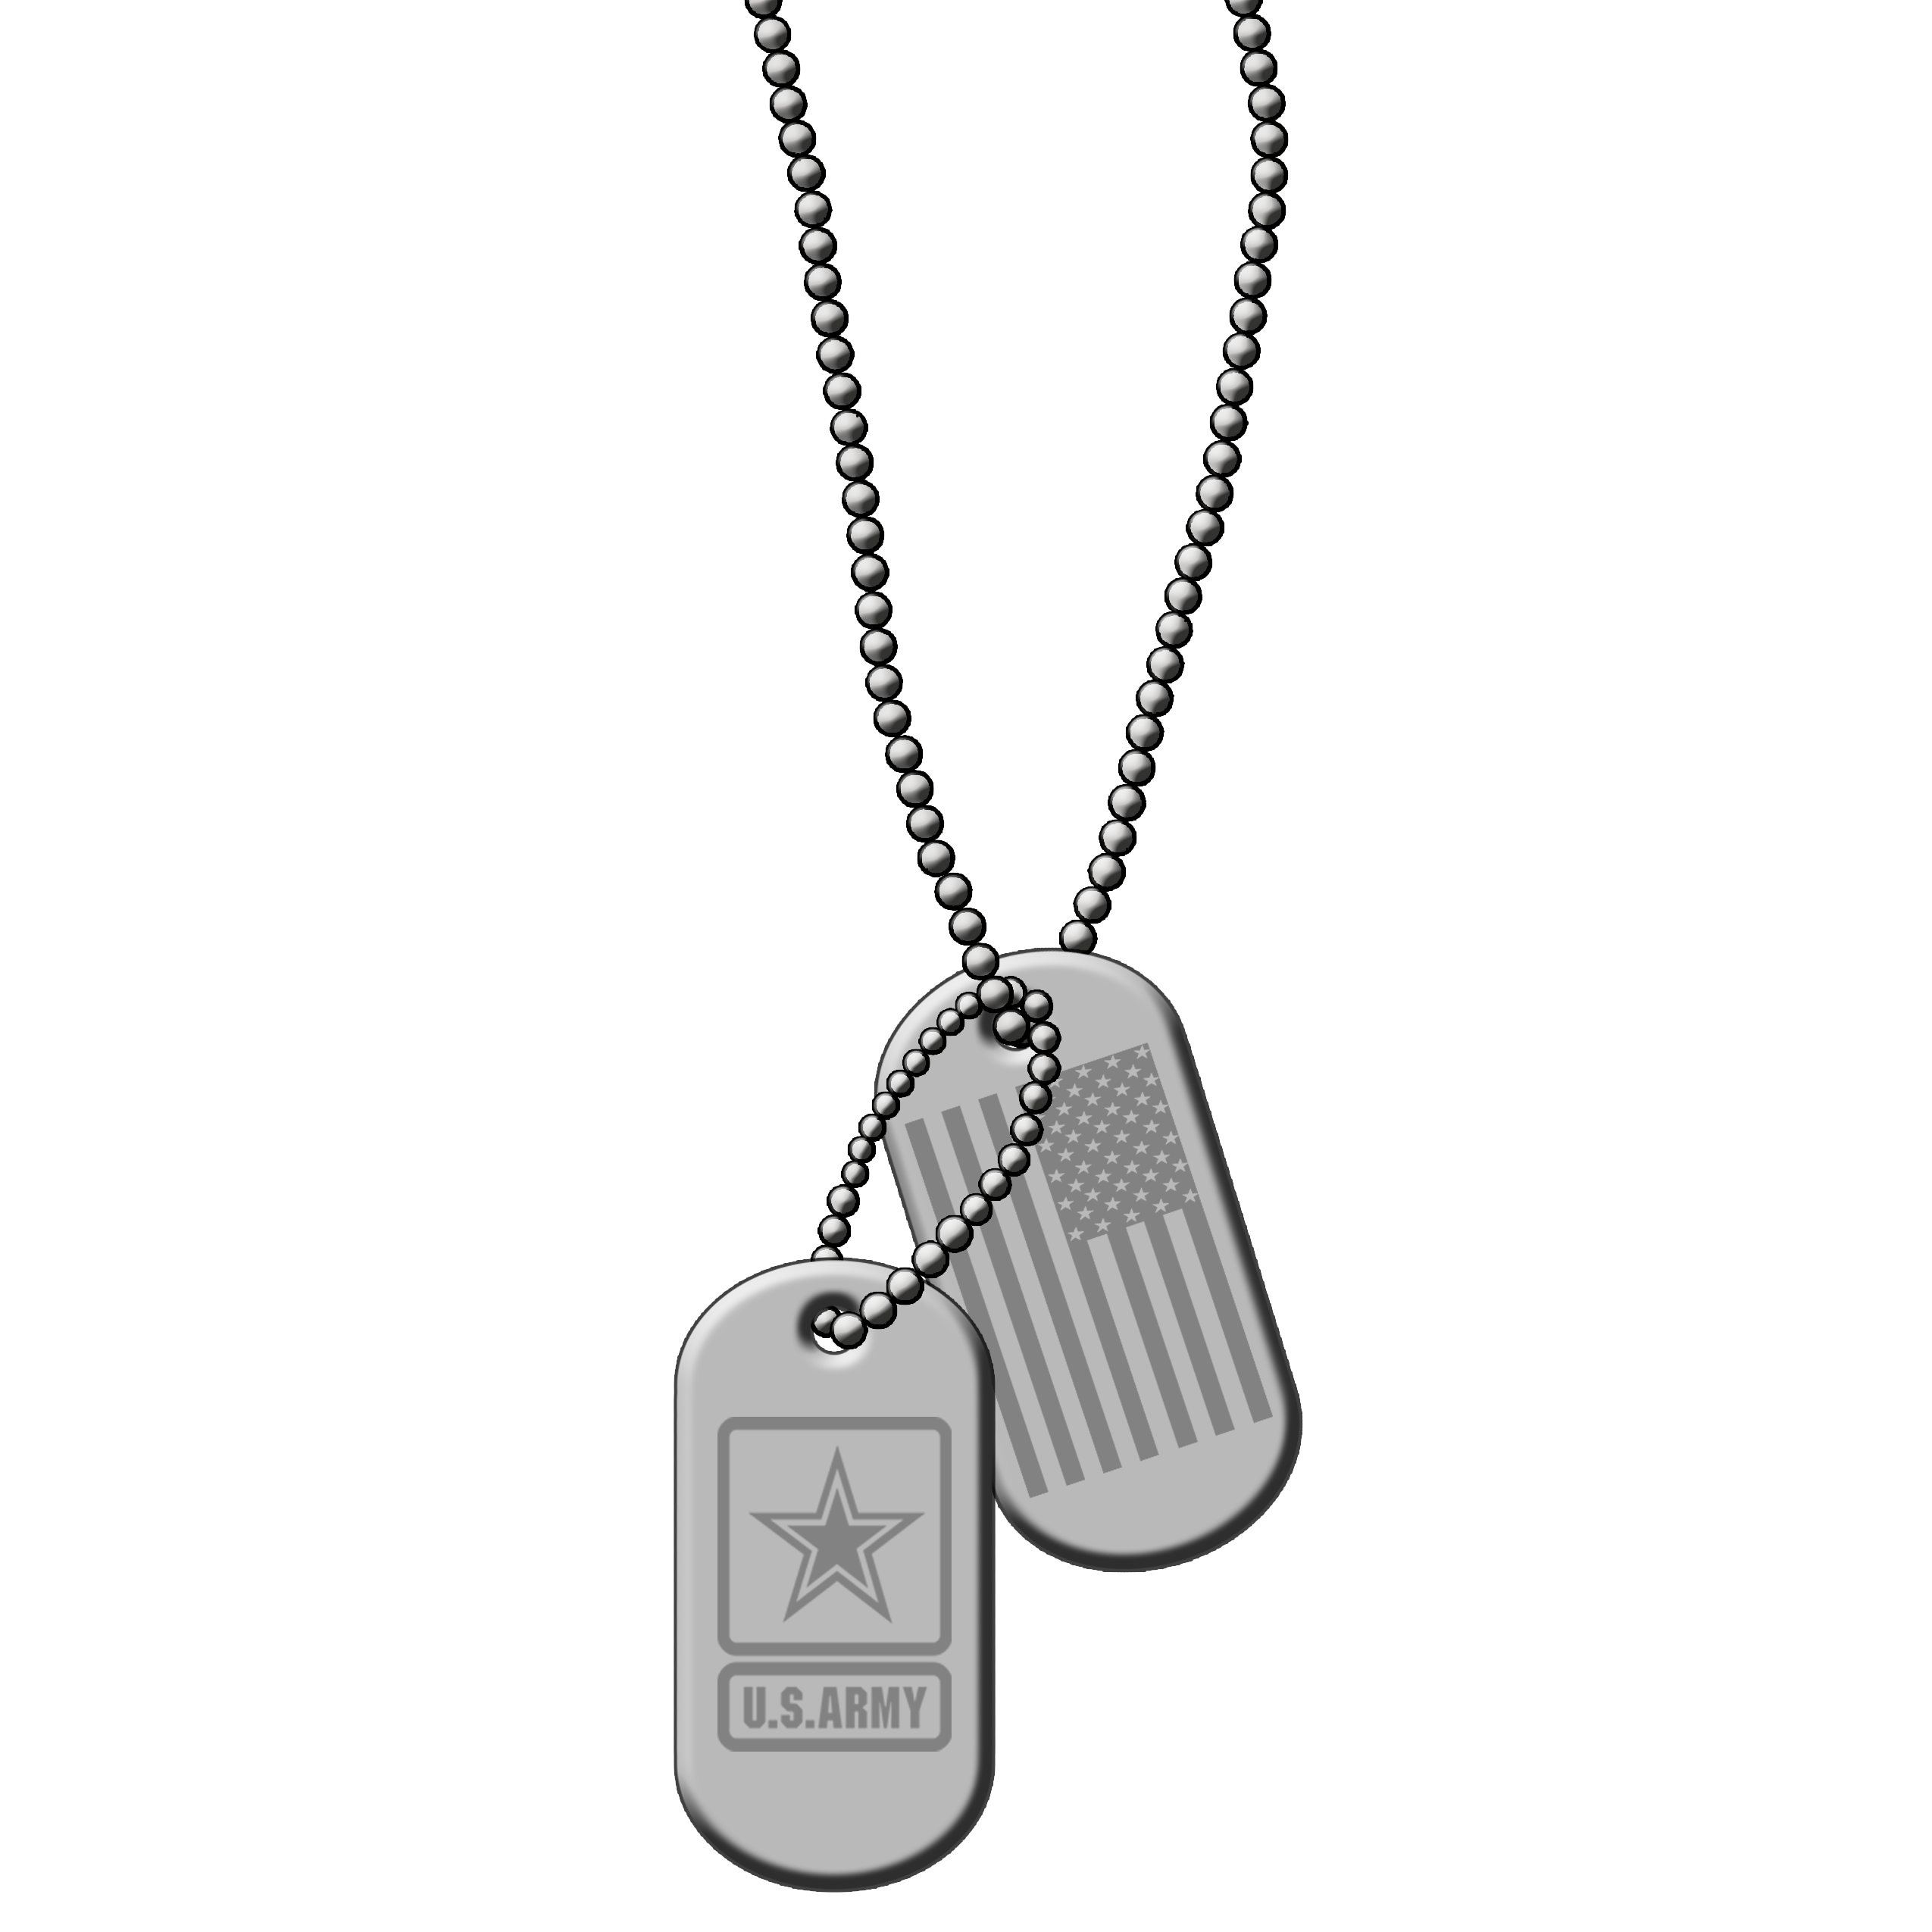 ID Dog Tags Silver Metal PNG Clip art Vector US ARMY